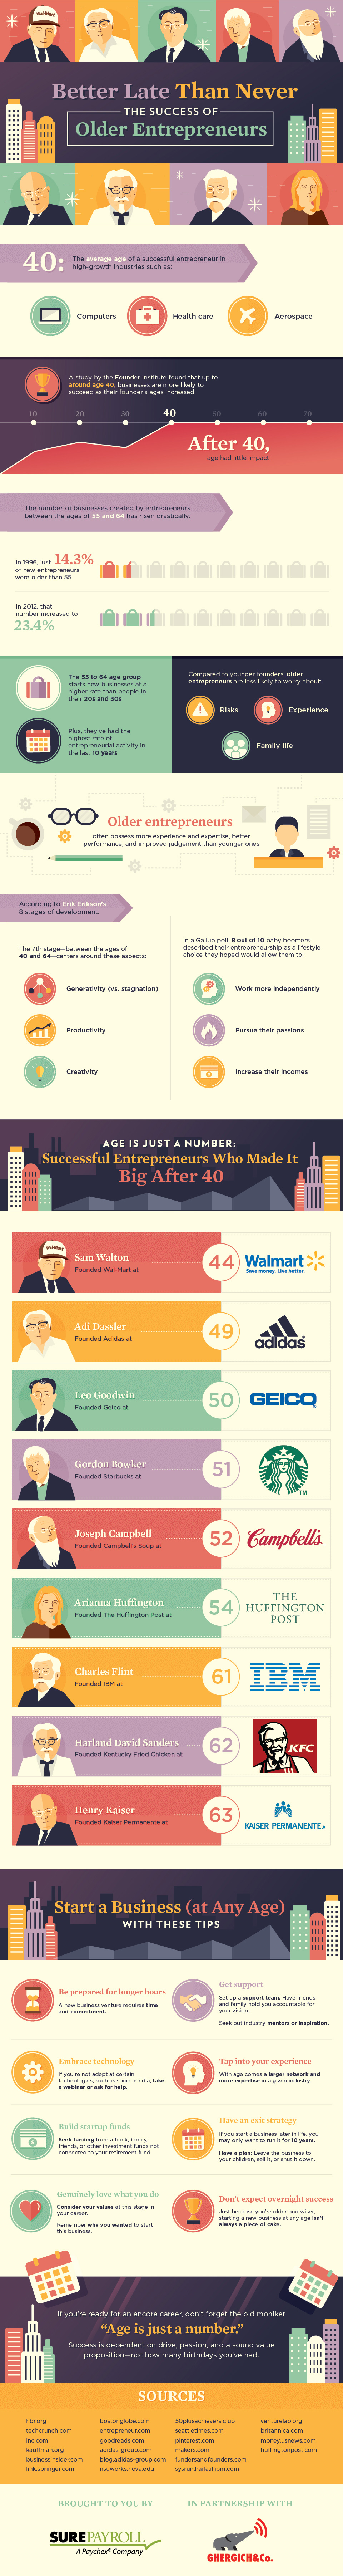 Success of Older Entrepreneurs Infographic